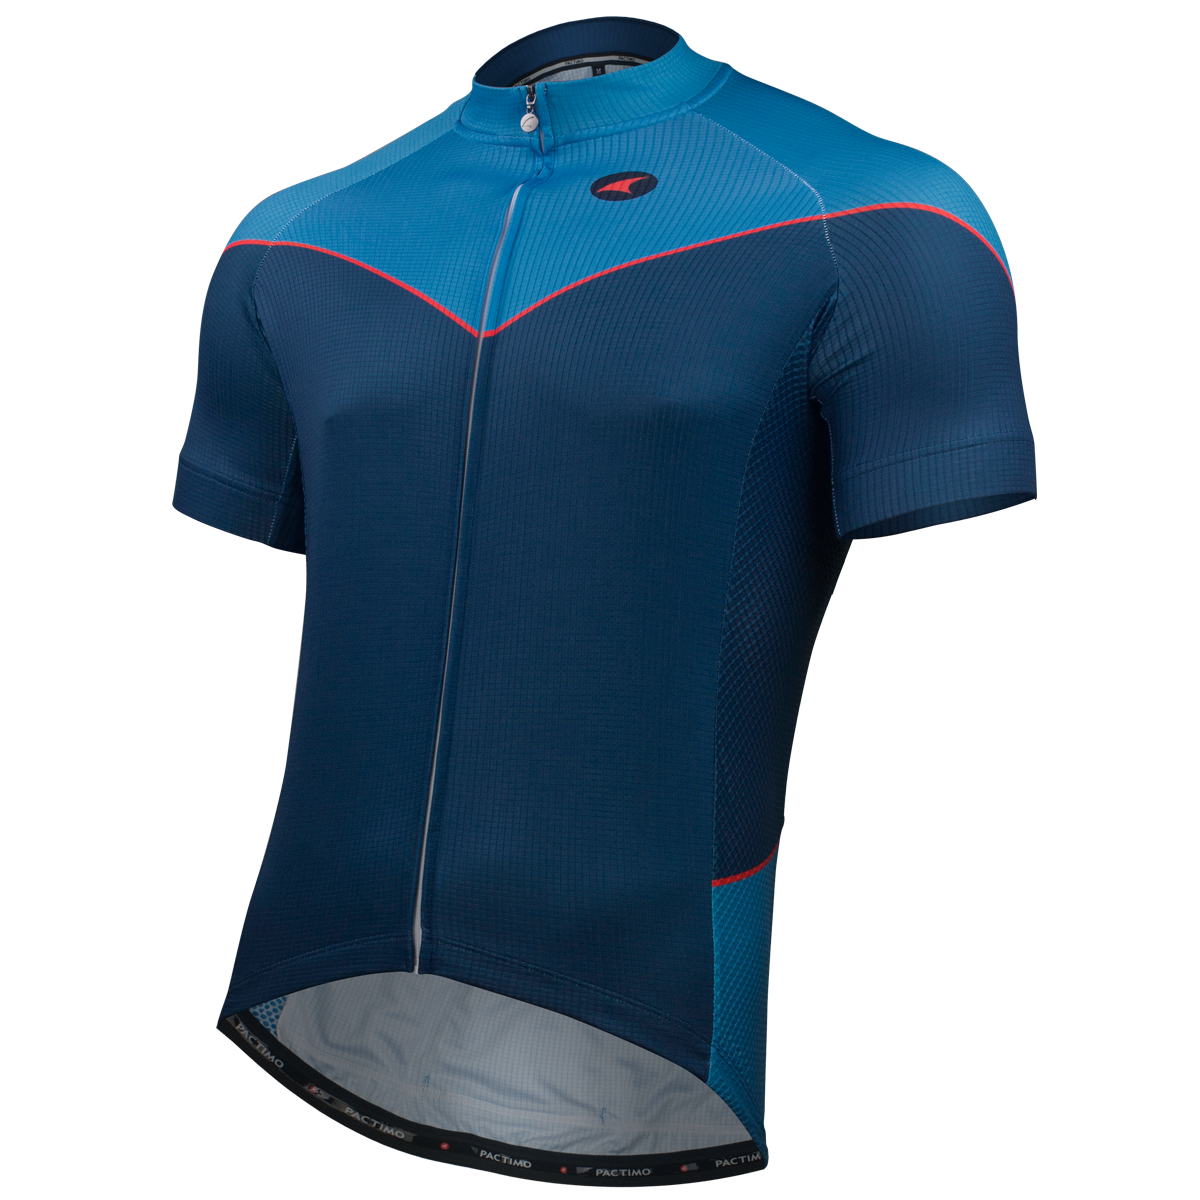 Ascent 2.0 Cycling Jersey Men's | Bike Jerseys for Men | Pactimo